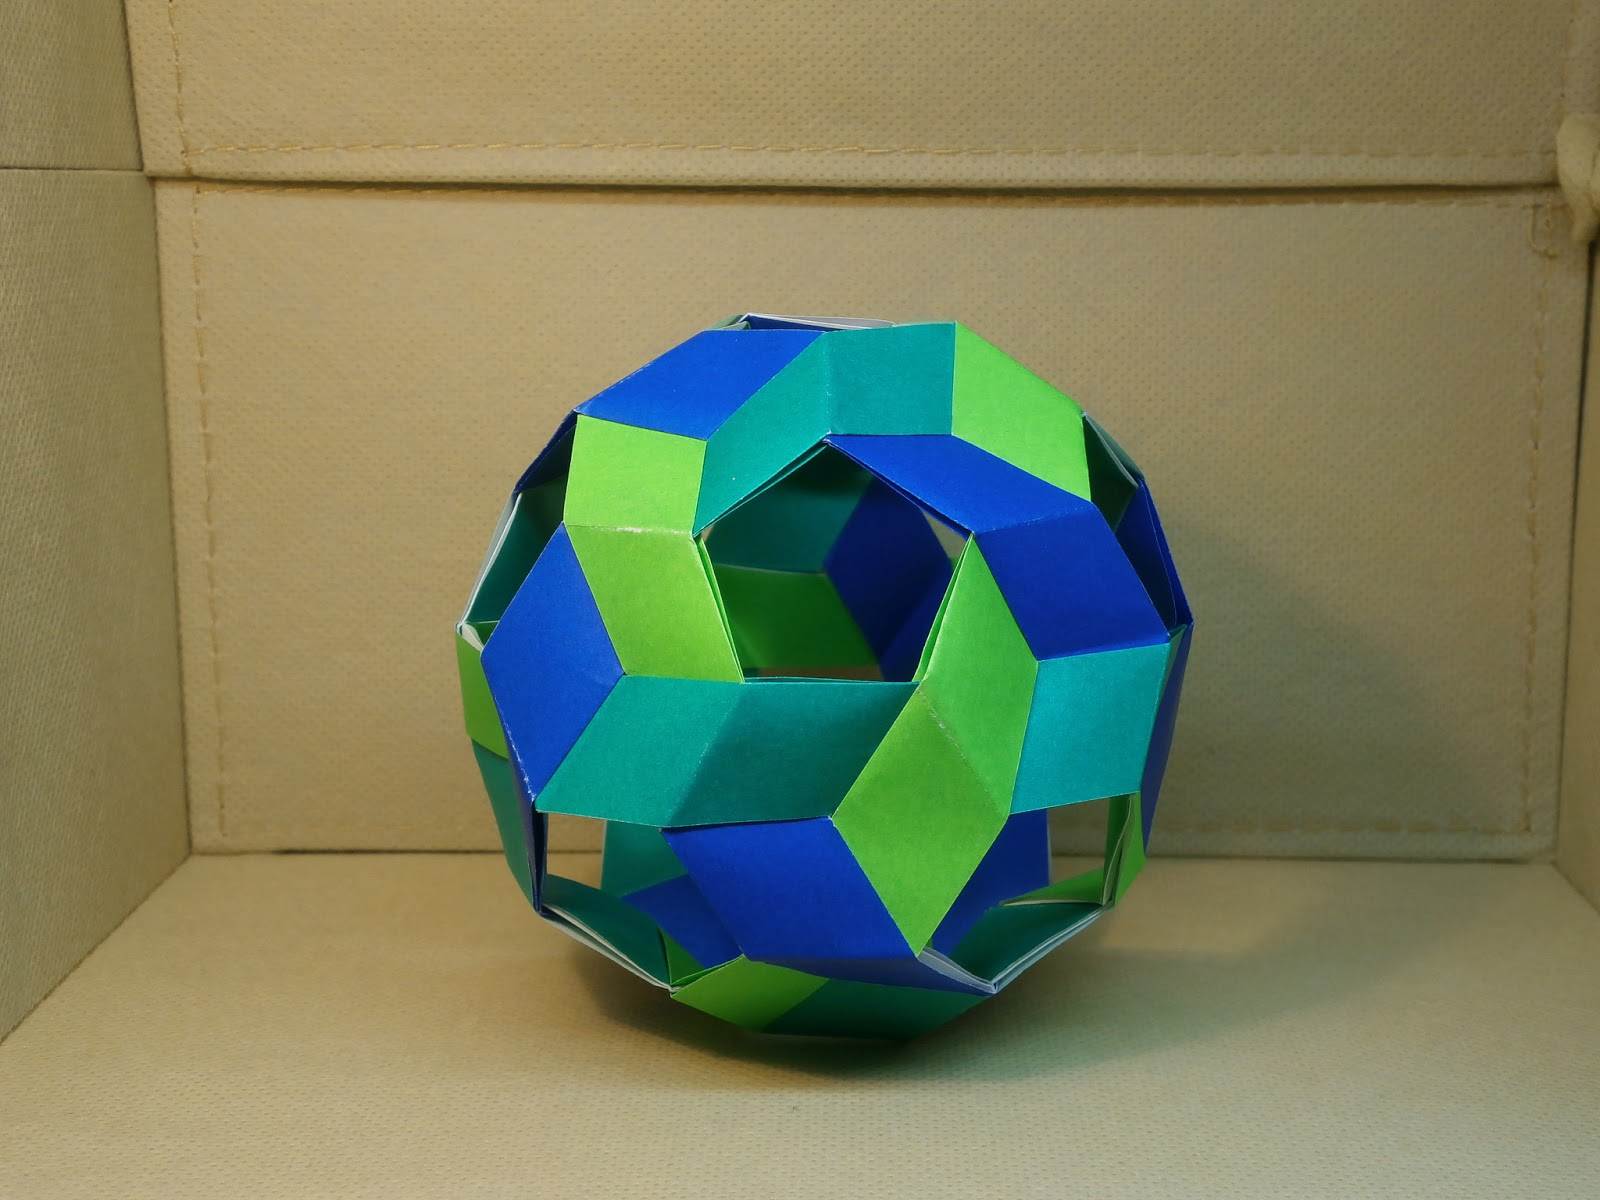 Pin Origami Sphere on Pinterest - photo#1